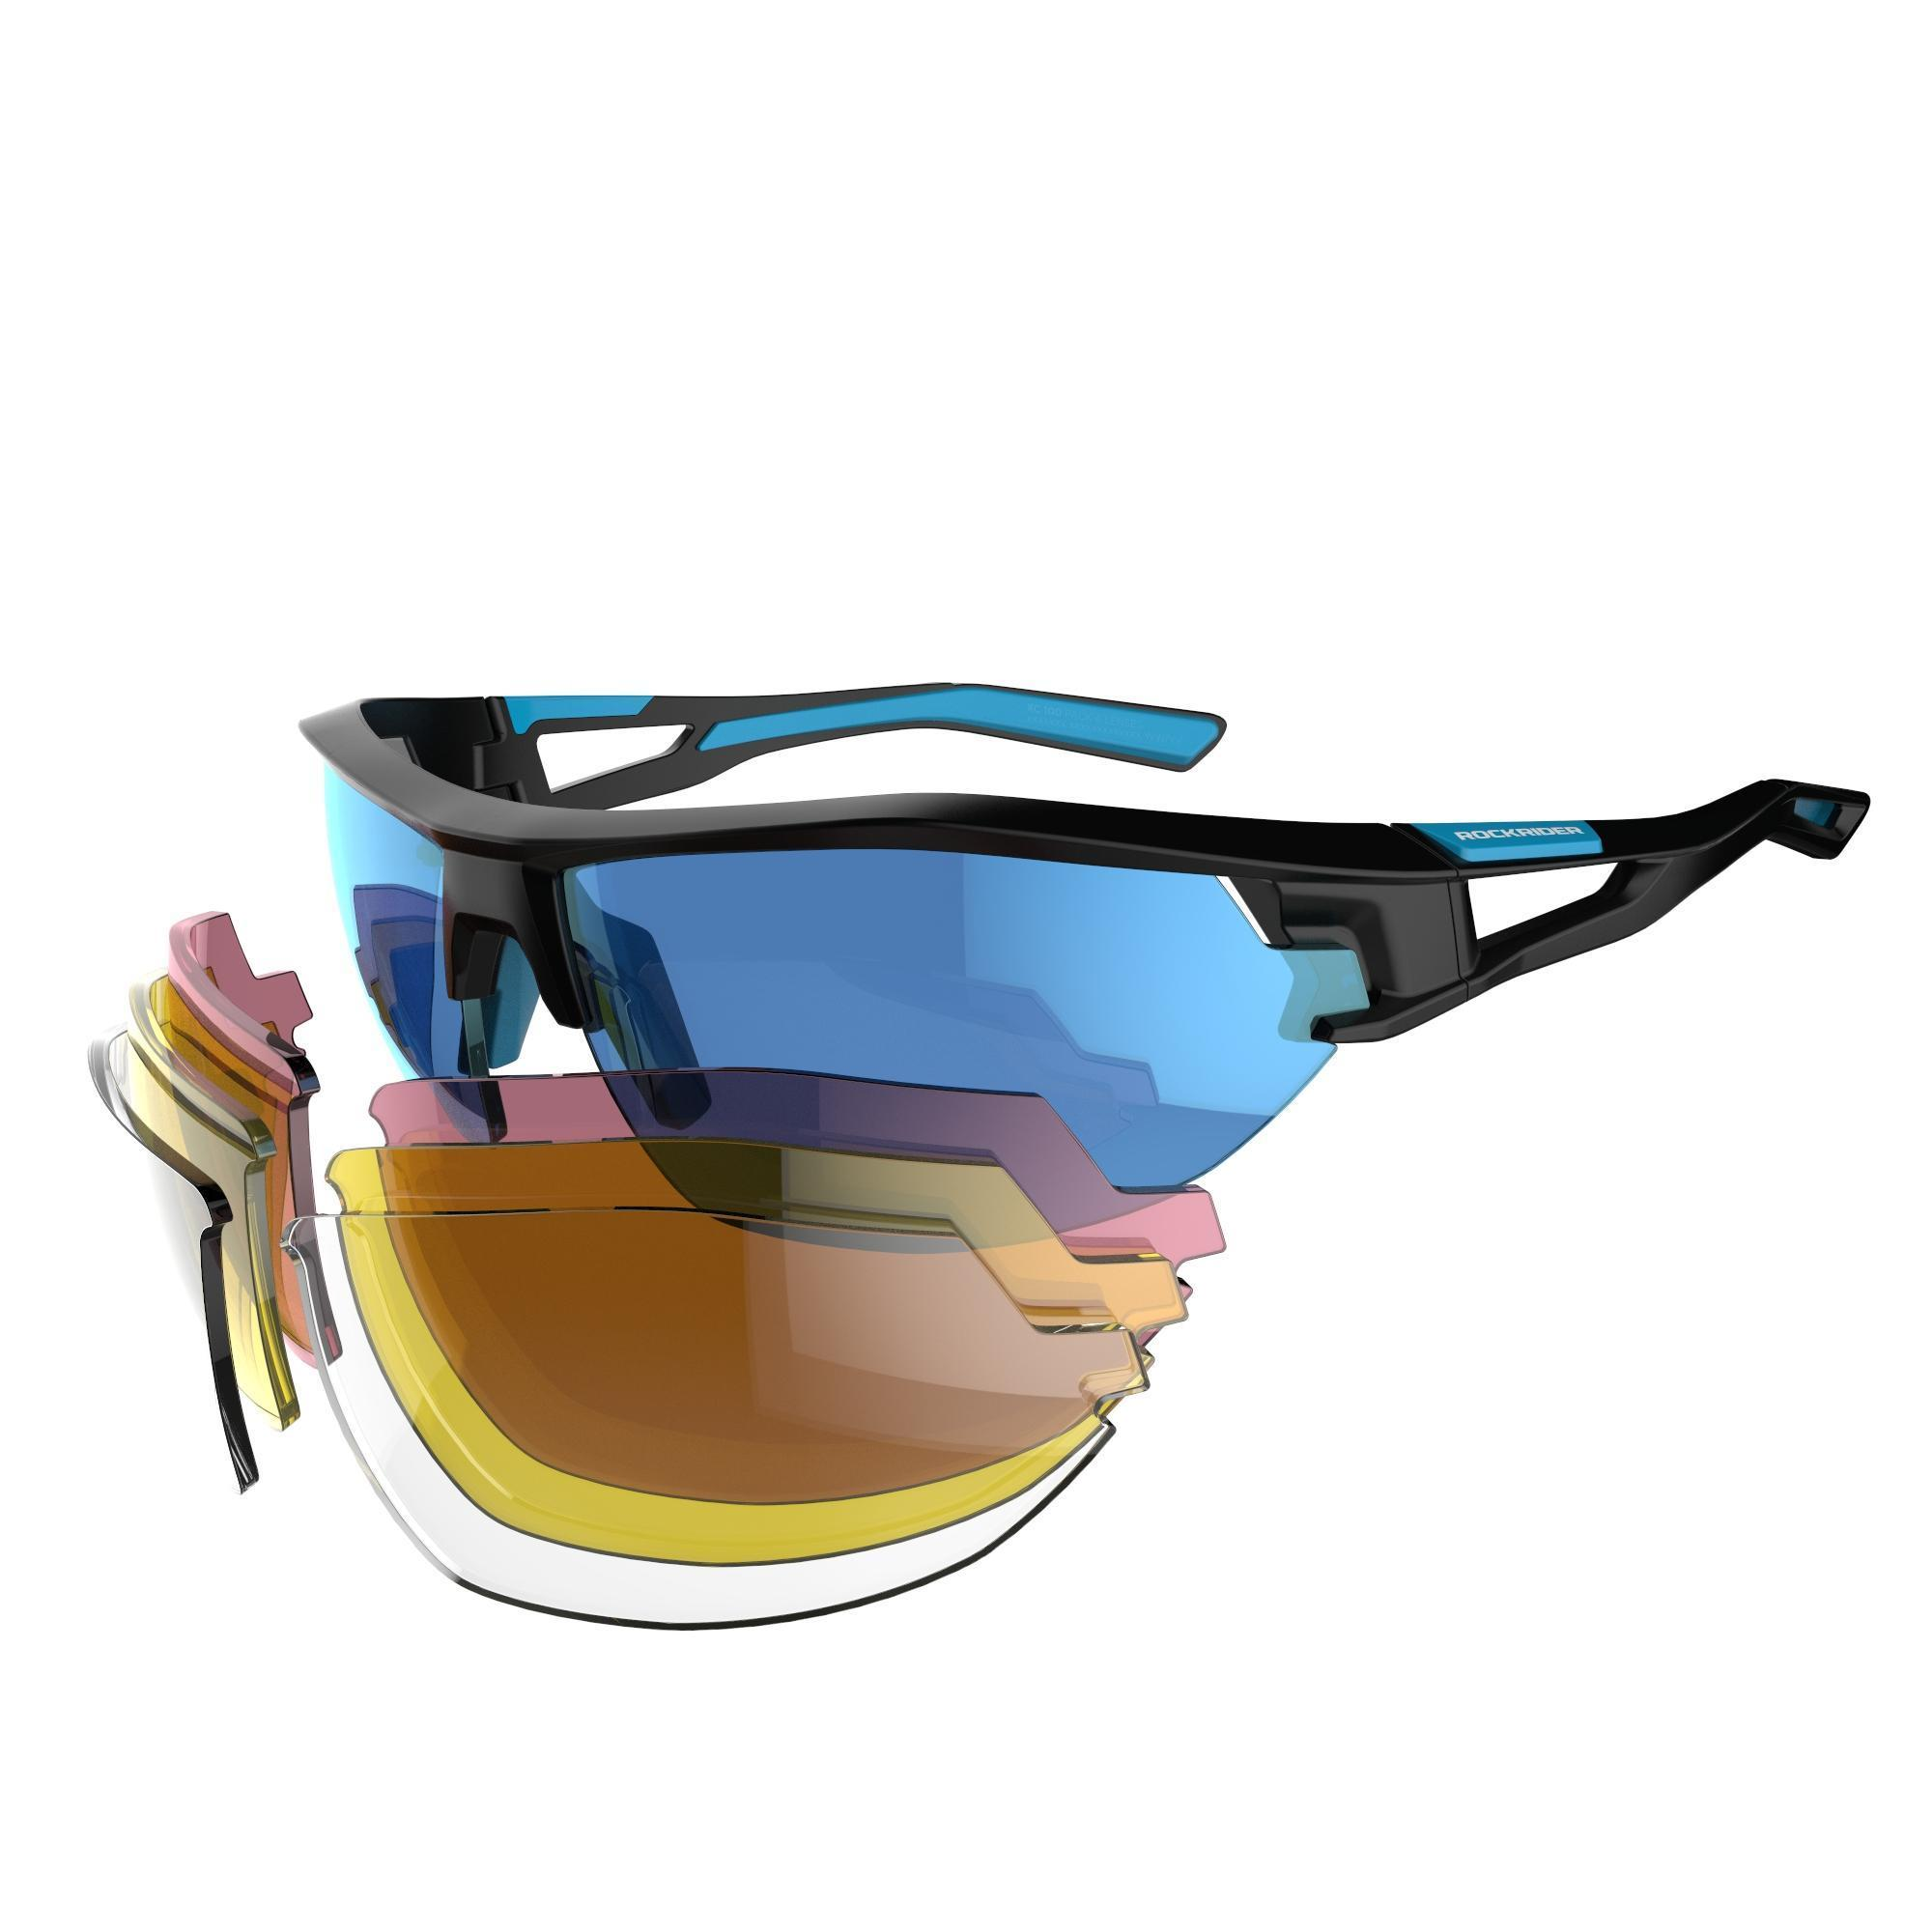 0f8dca8b77 Adult sport sunglasses - Decathlon